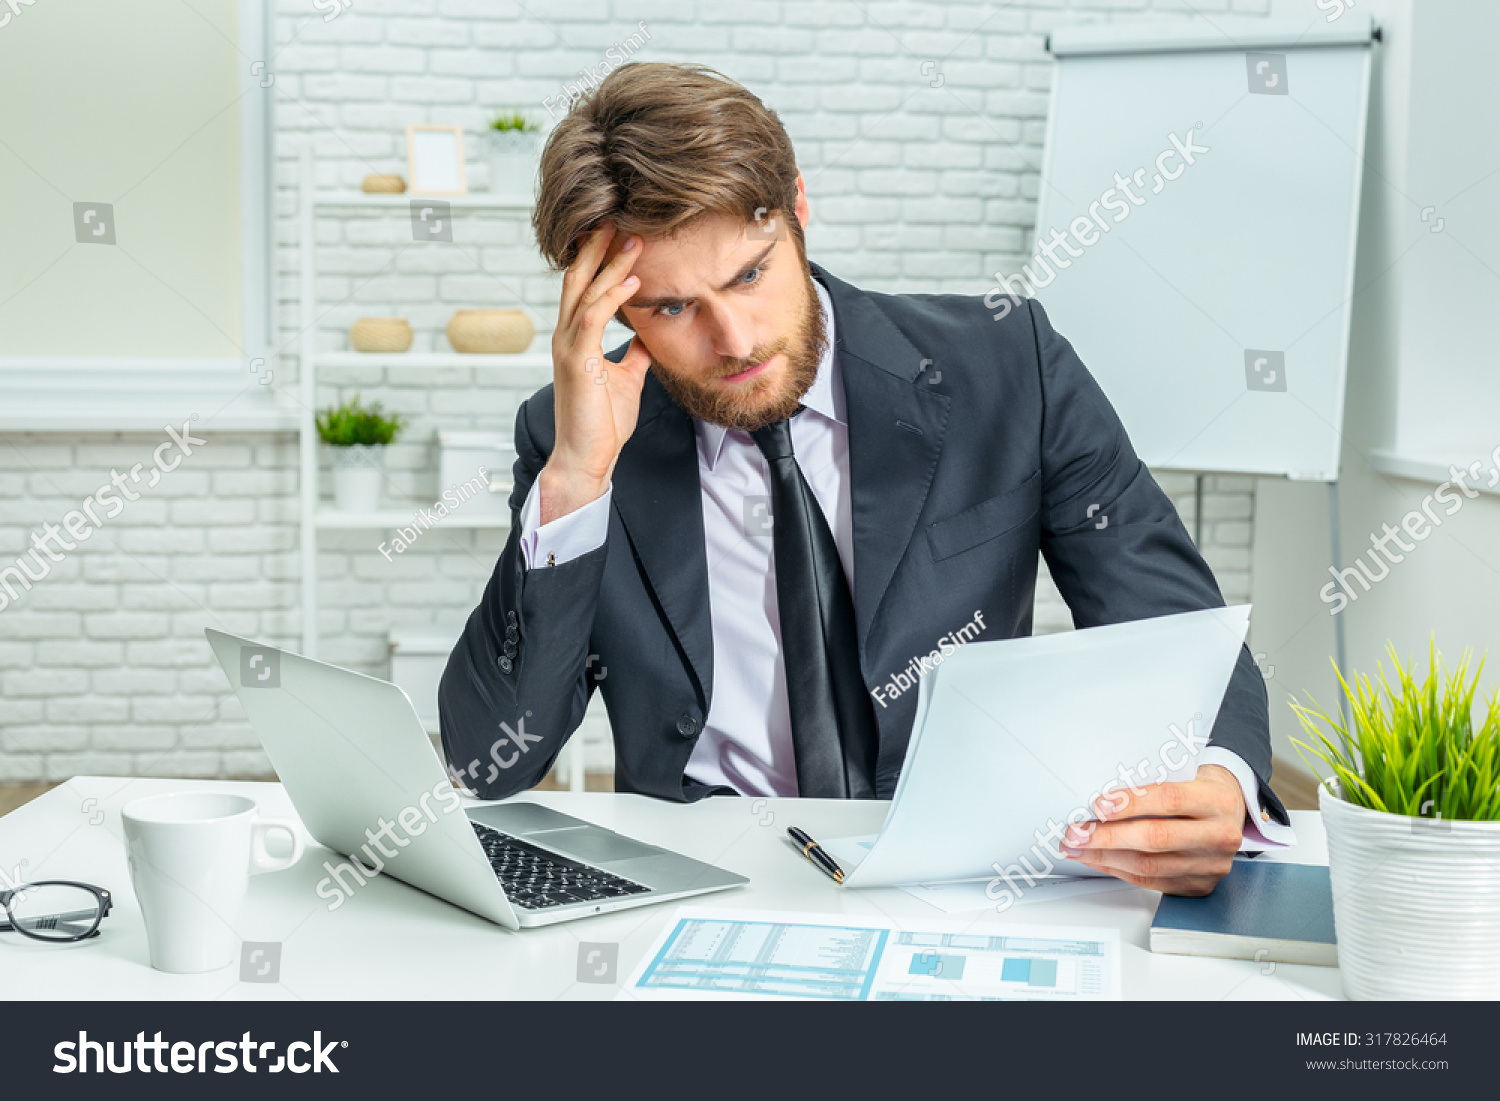 Tired Businessman Work Office Stock Photo Edit Now 317826464